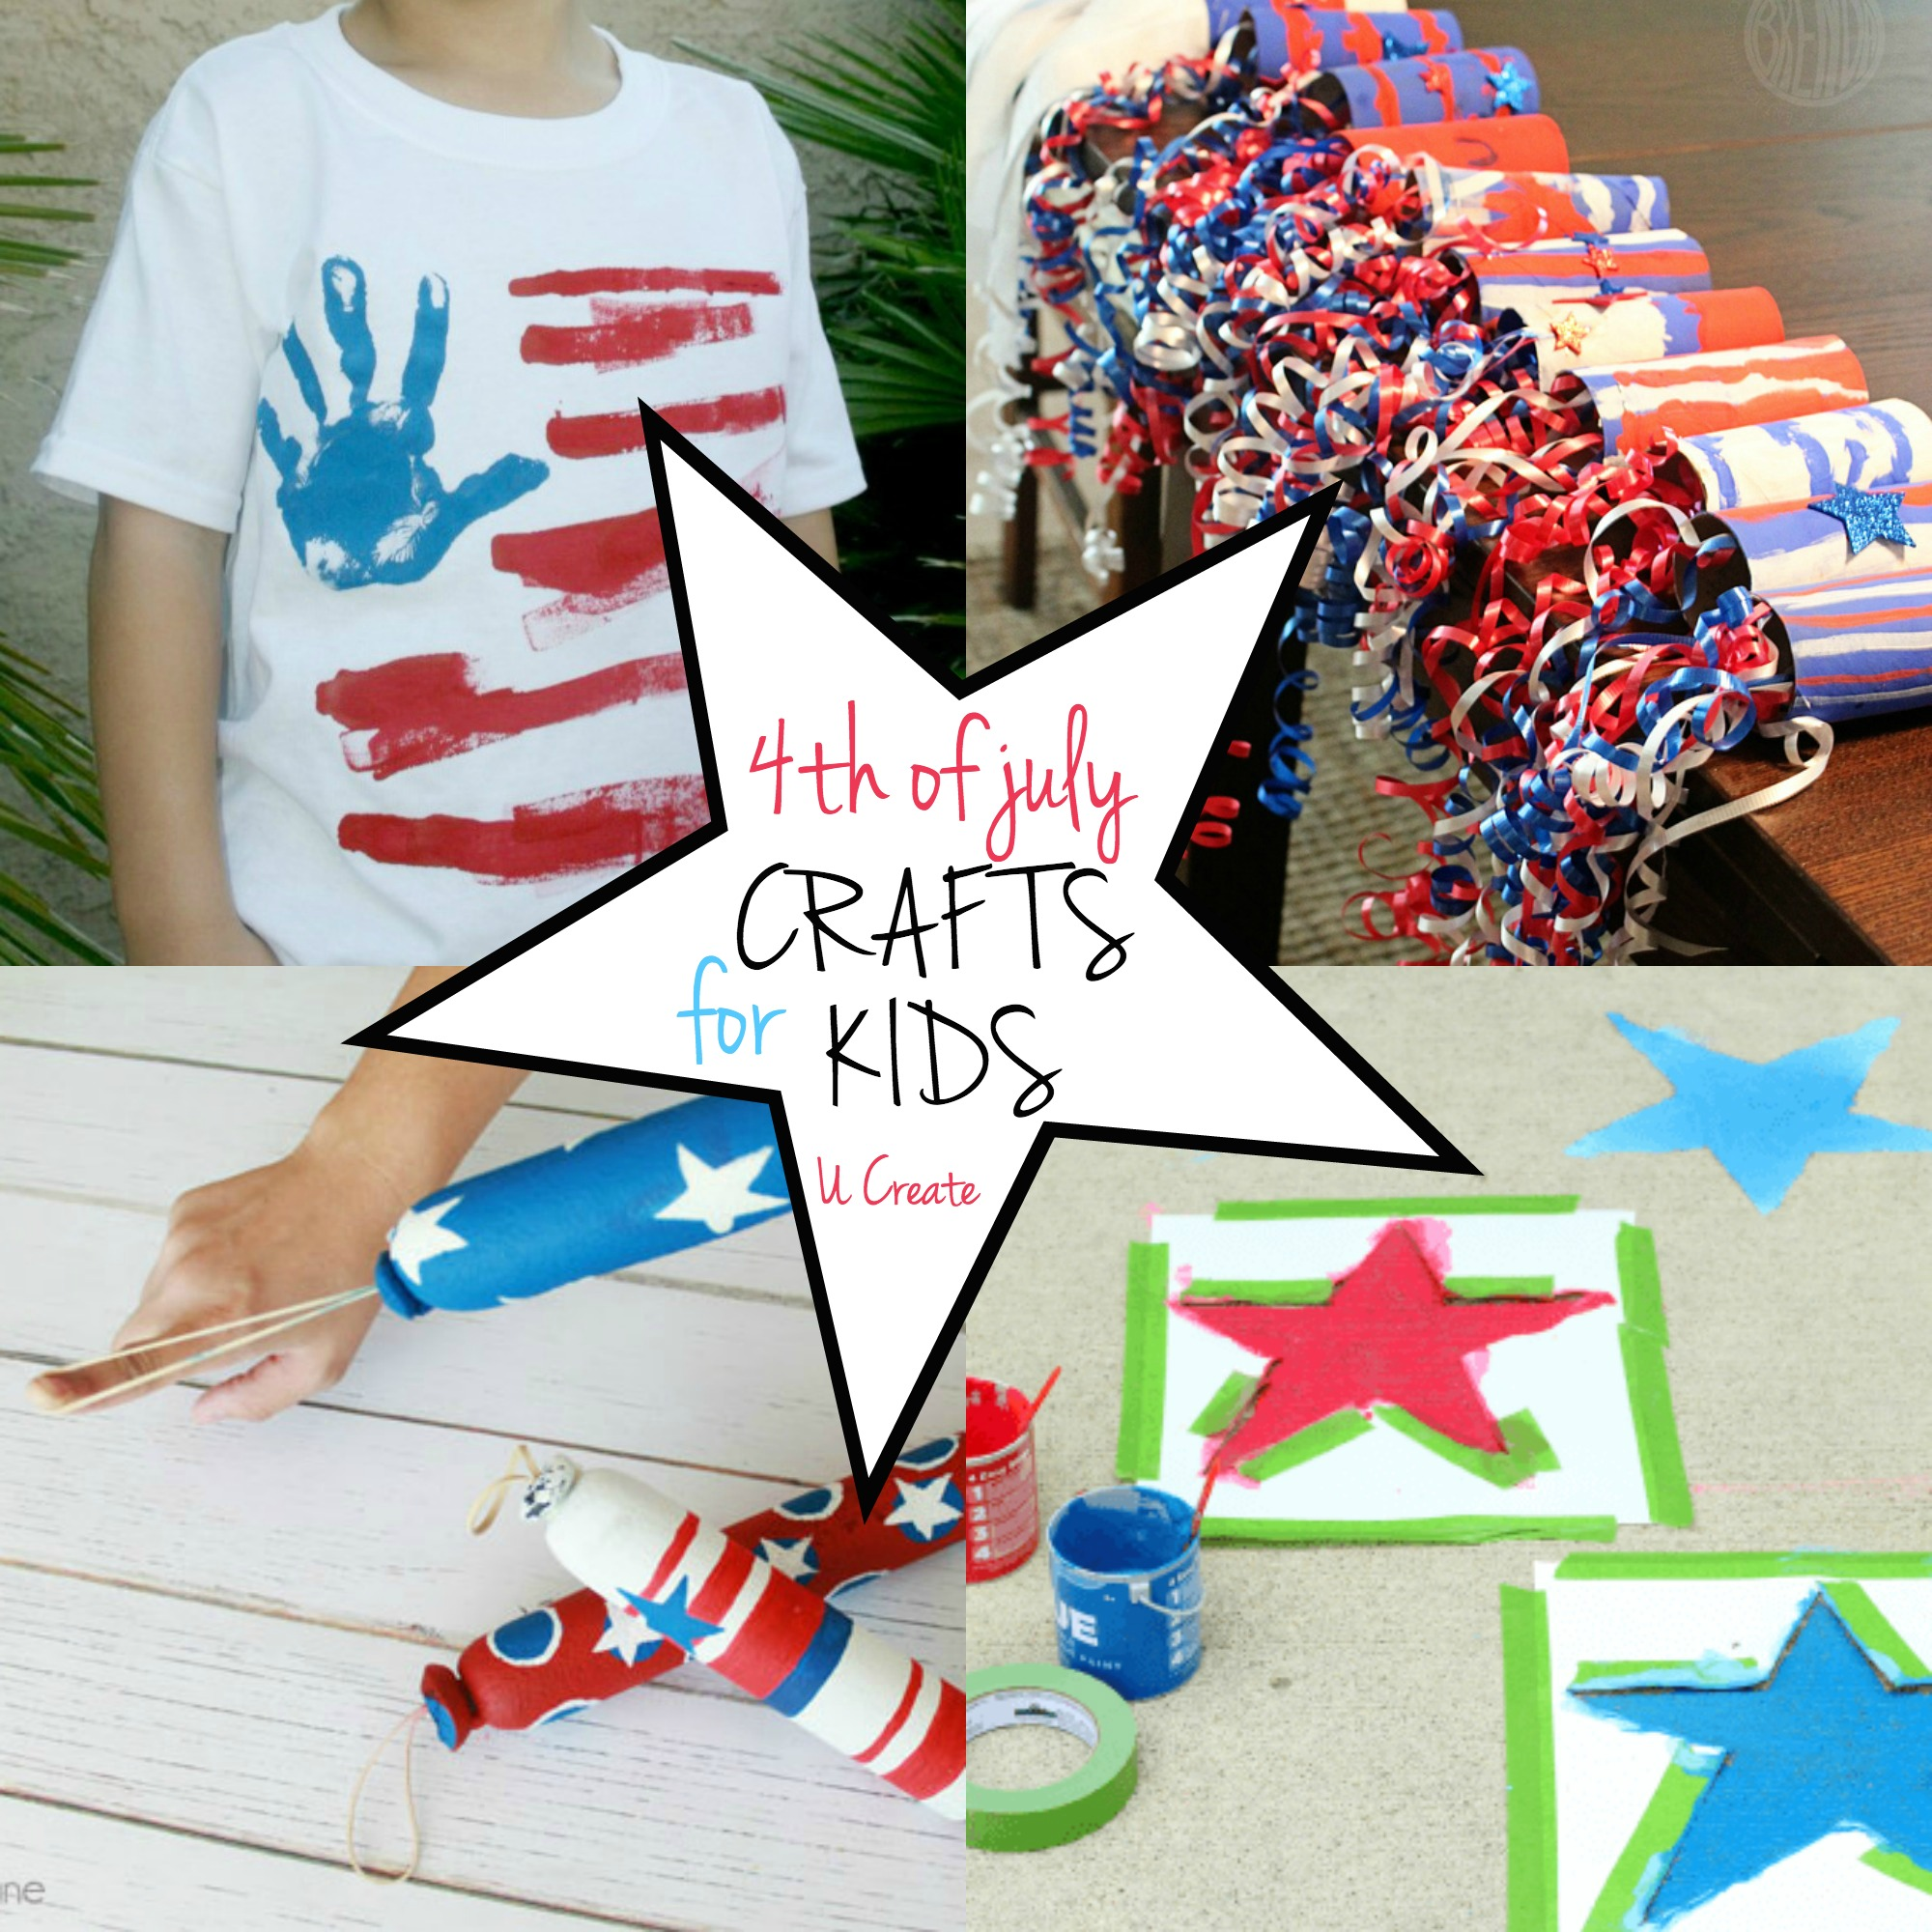 Th of july crafts for kids